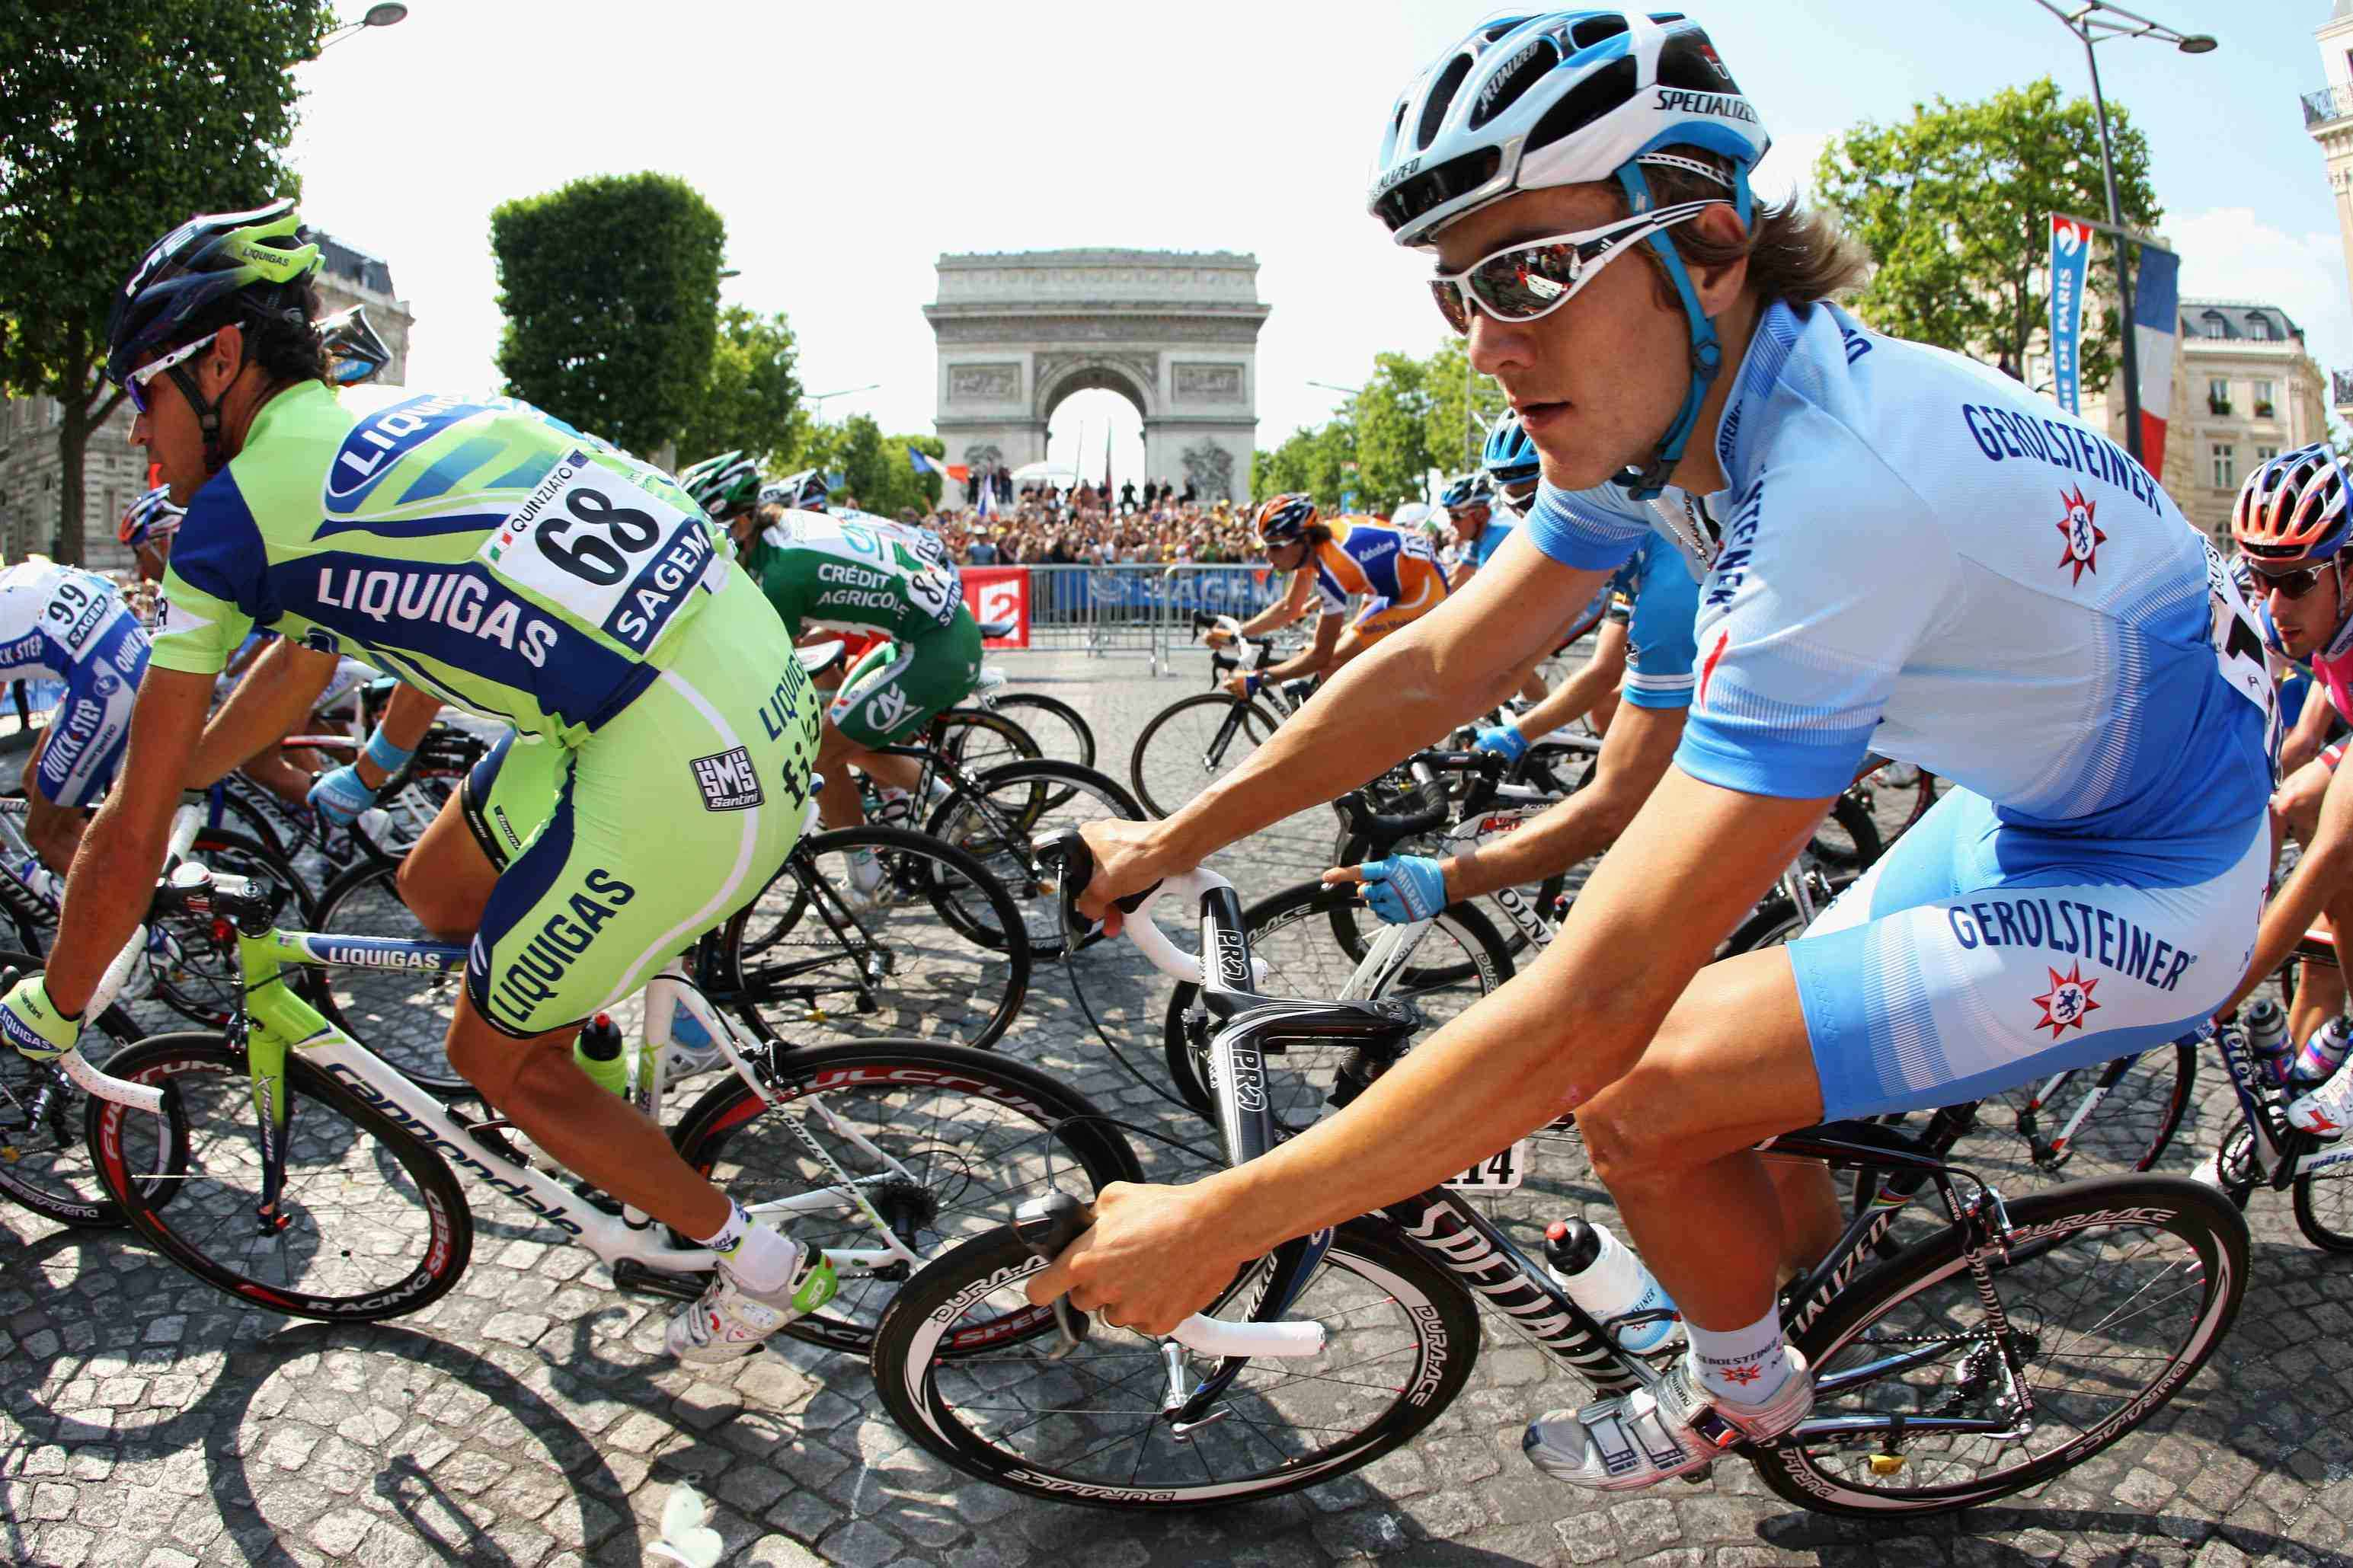 Heinrich Haussler (R) of Team Gerolsteiner passes the Arc de Triomphe during Stage 21 of the 2008 Tour de France on July 27 in Paris, France.